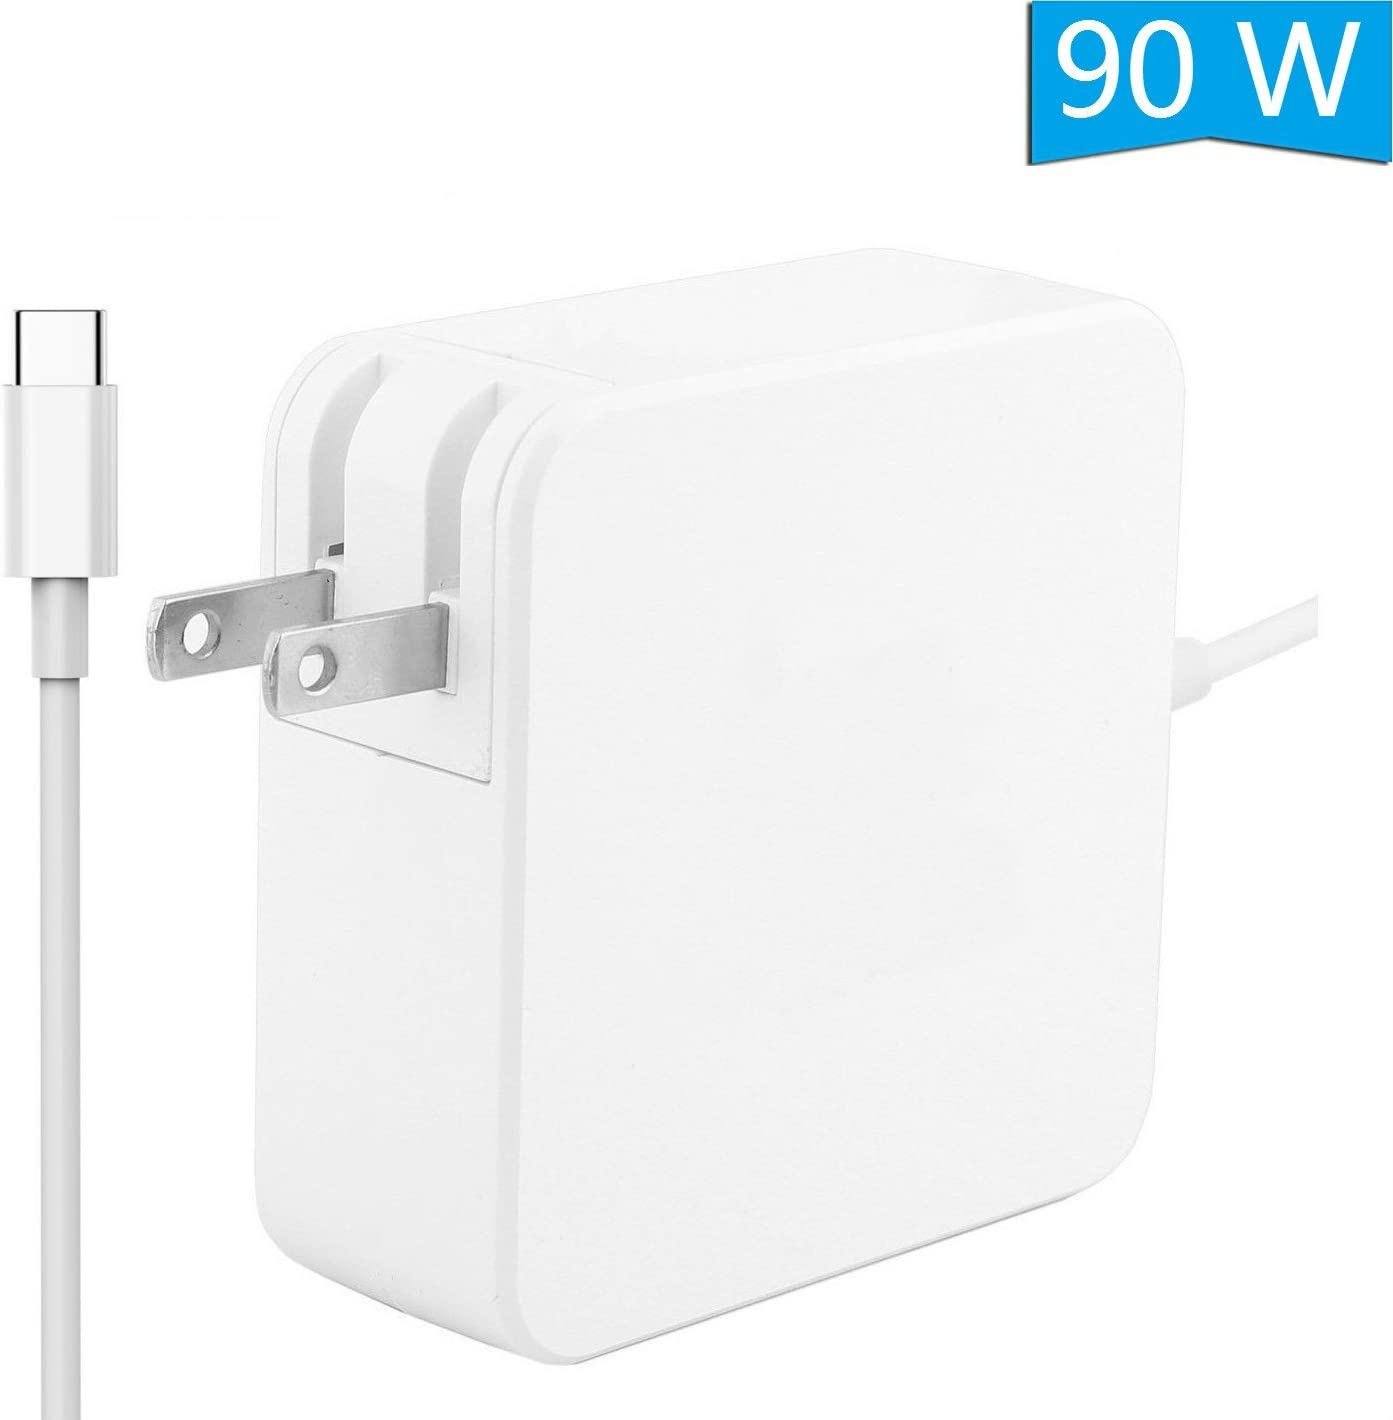 Allink 87W USB C Type C Wall Charger PD Charger with Travel Foldable Plug for MacBook 2015/2016/MacBook Pro 12